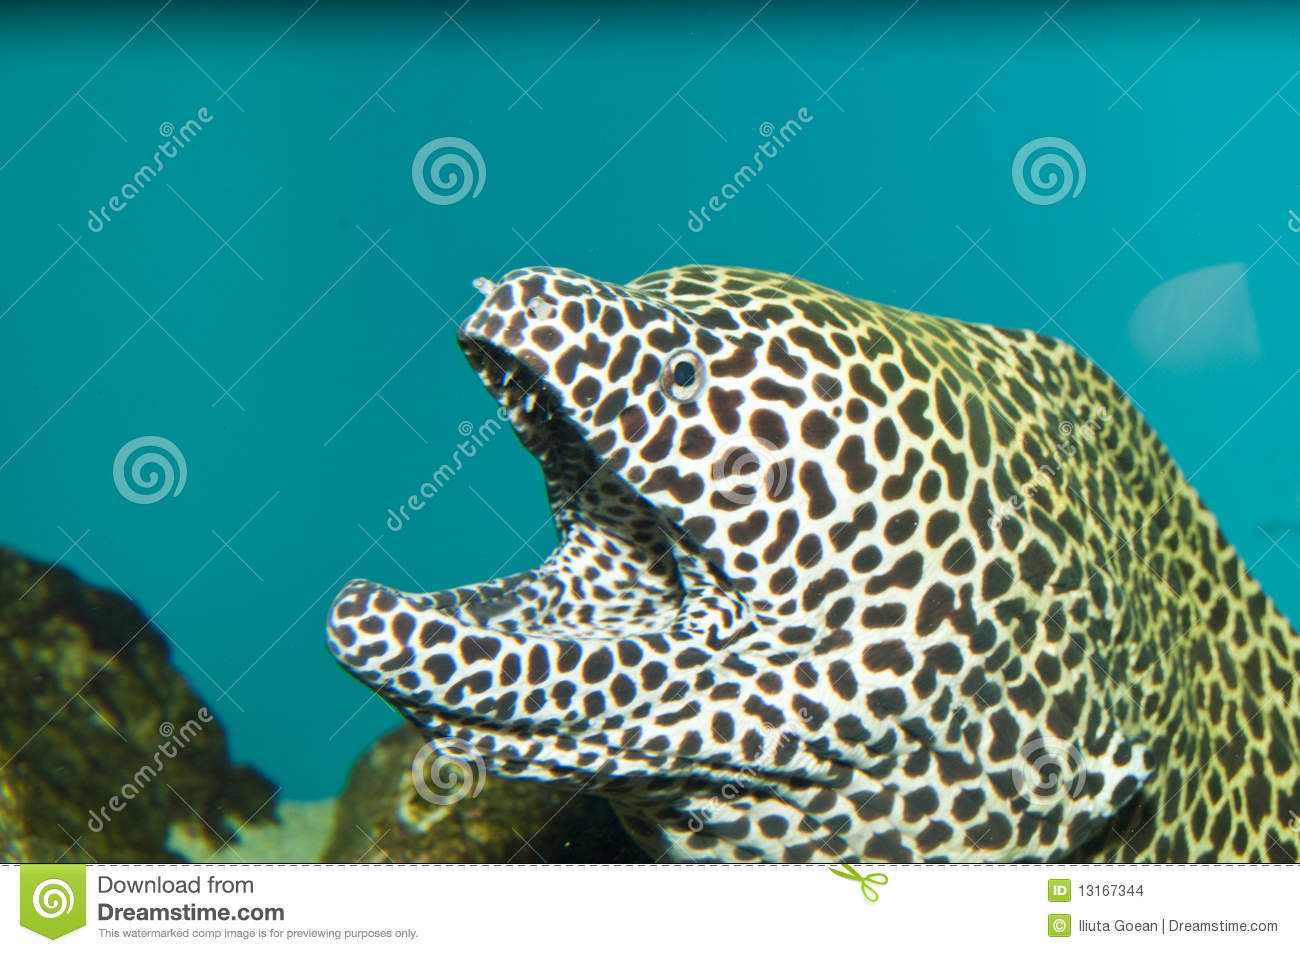 Tessalata eel in aquarium stock photo image of fish for Eel fish tank